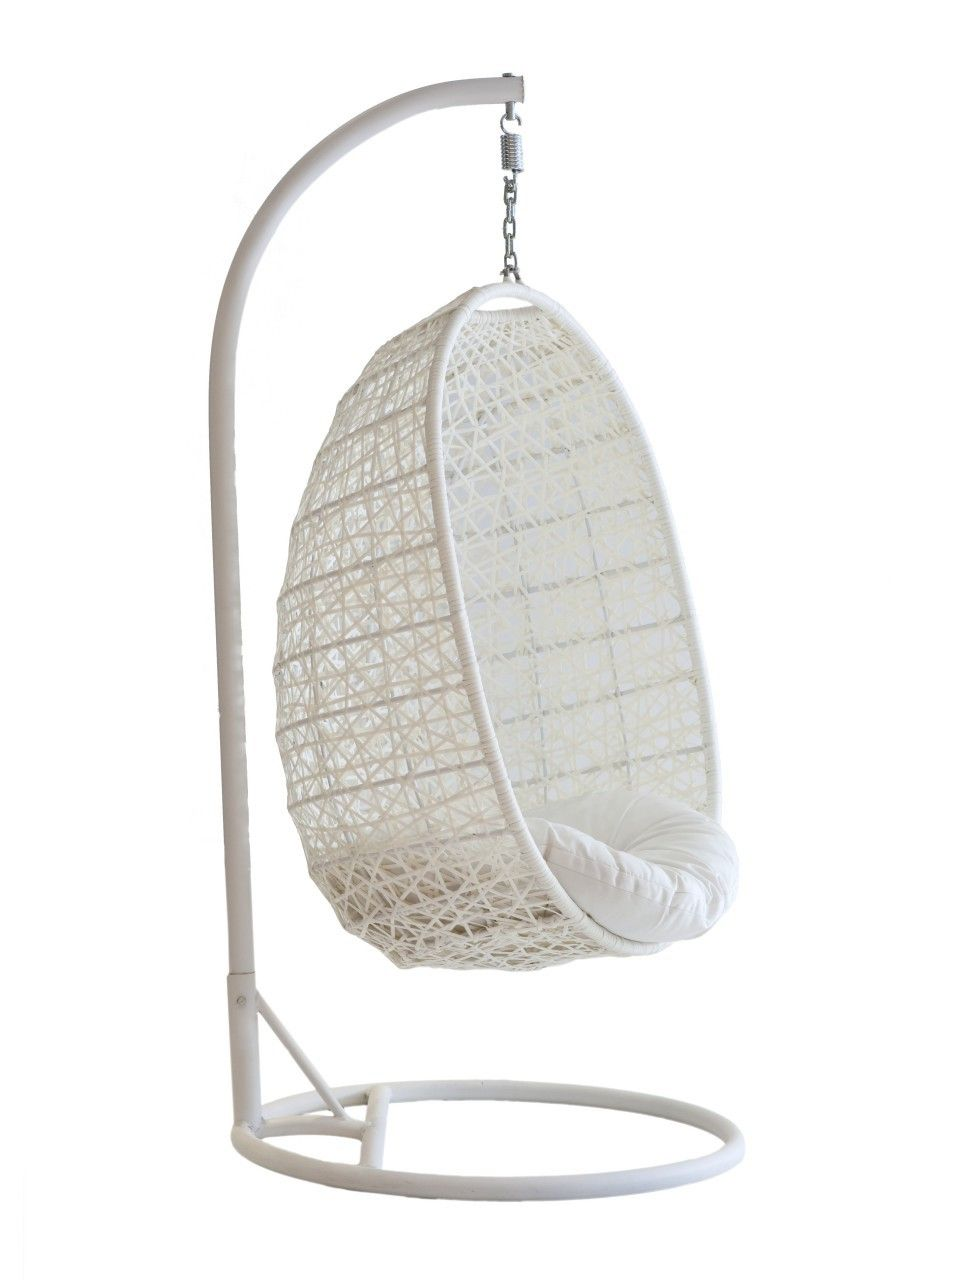 Furniture Charming White Viva Design Cora Hanging Chair Design With Stand For Beautiful Outdoor